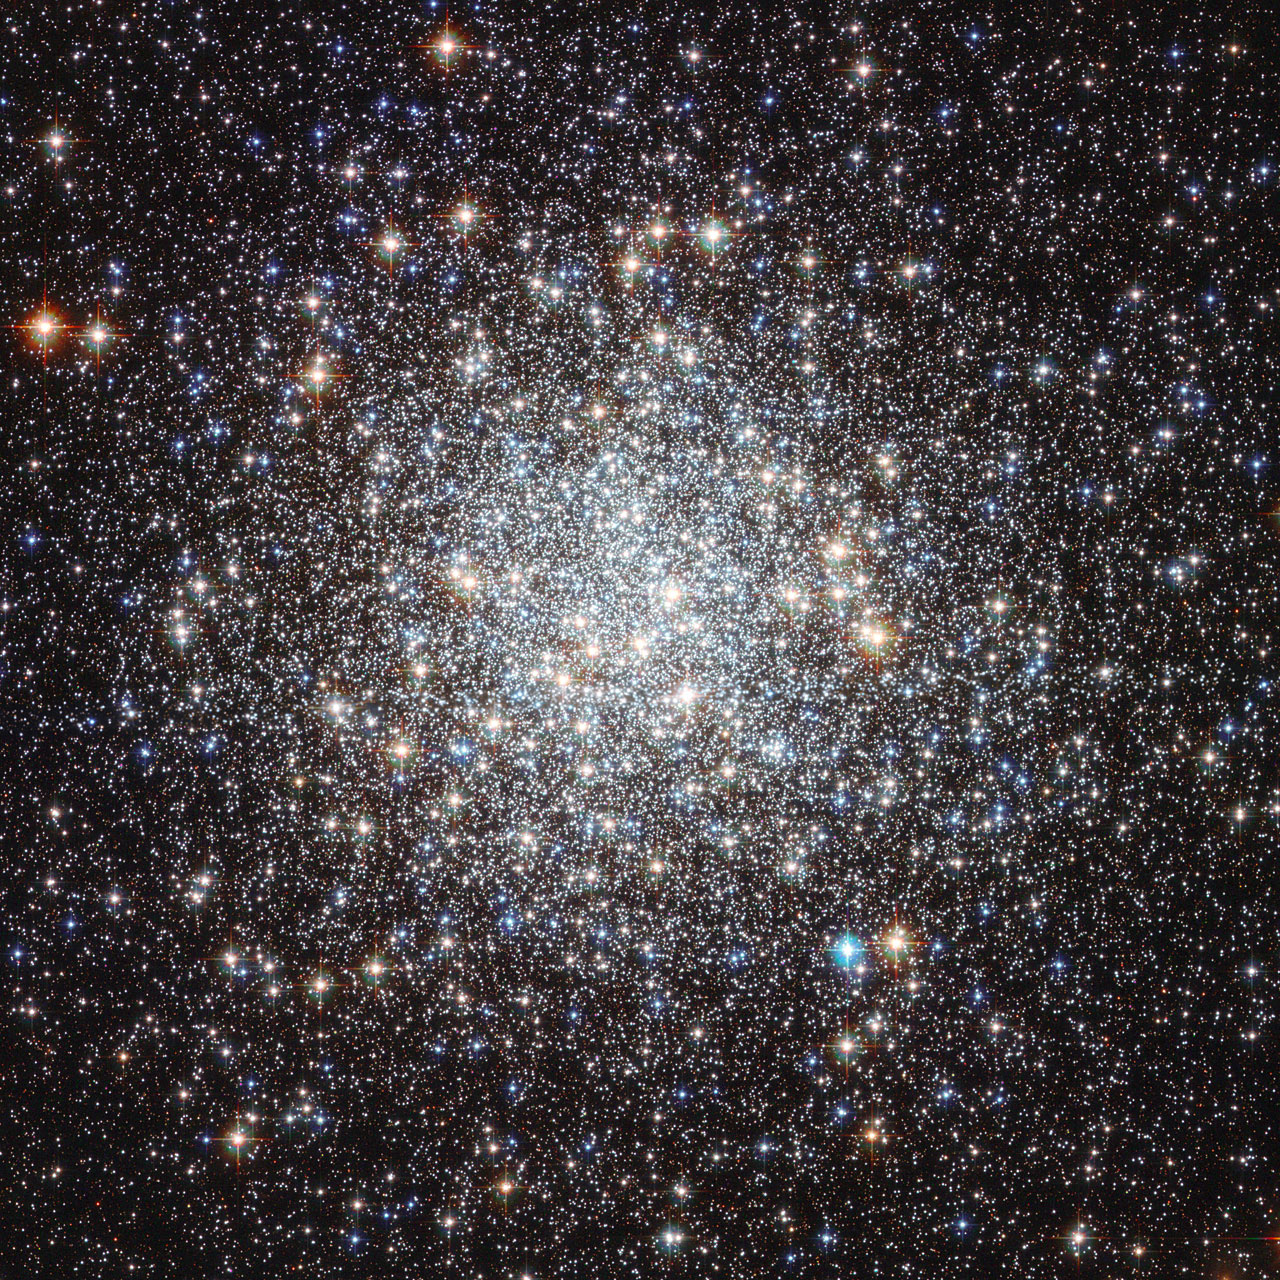 Image taken by Hubble Space Telescope shows the globular cluster Messier 9. Image: Hubble, NASA, ESA.